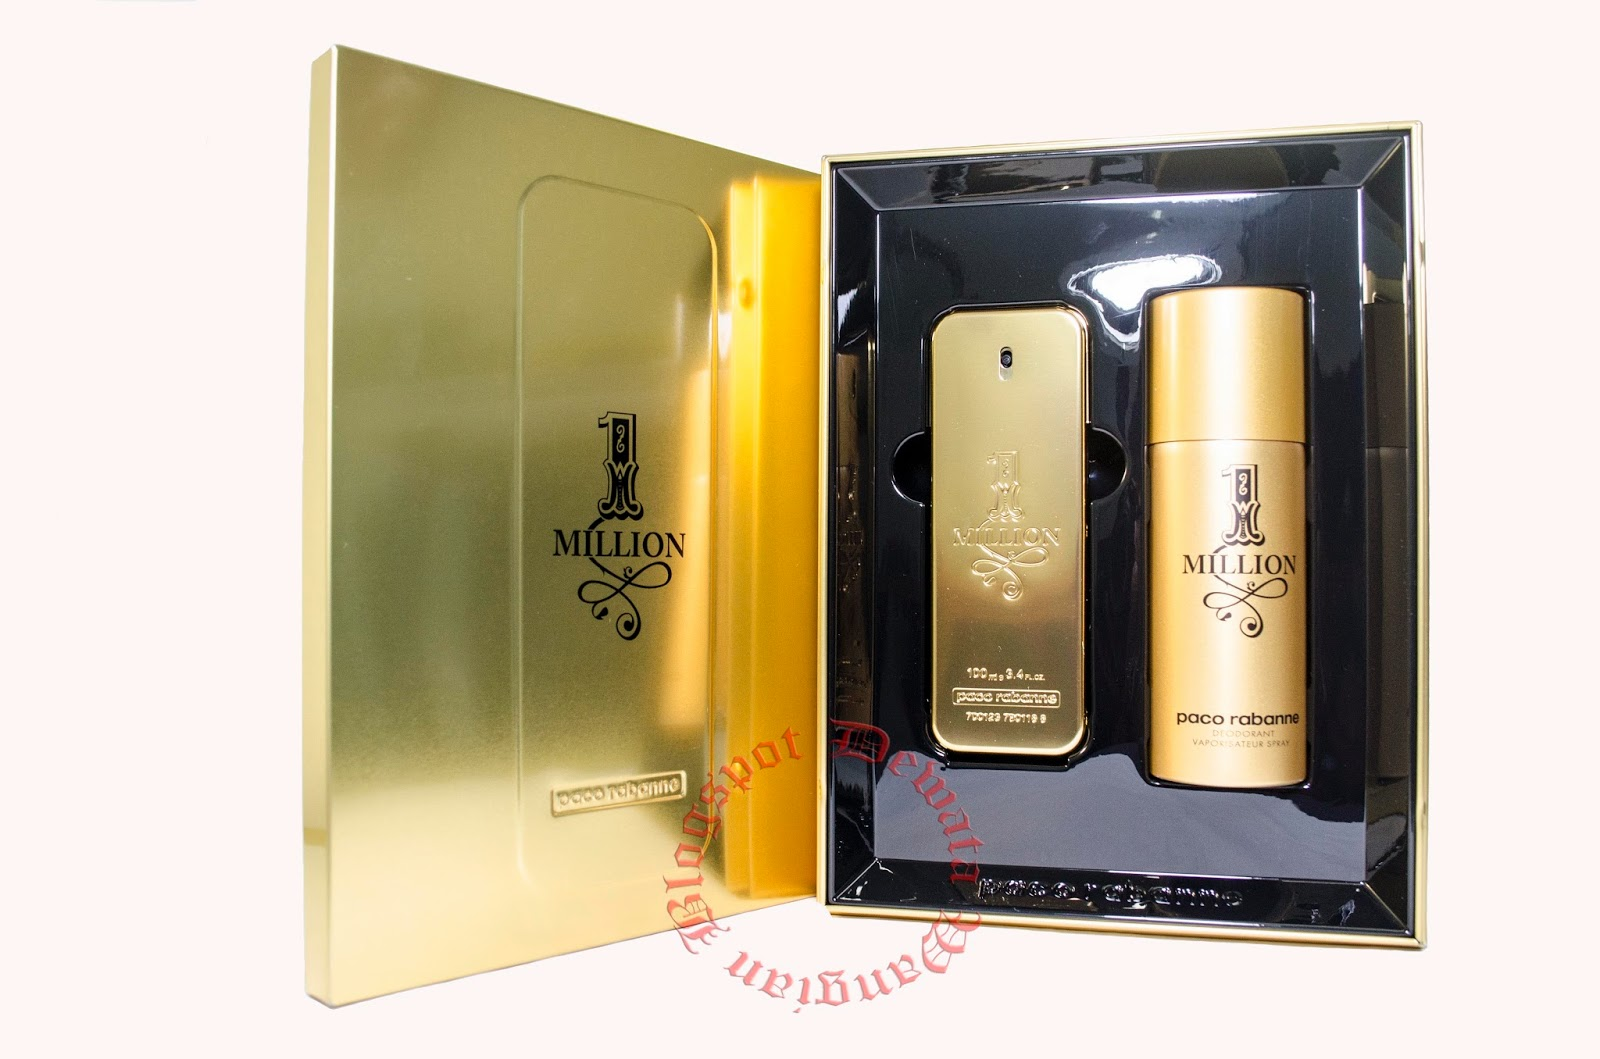 3095f836d88f Paco Rabanne s fragrance for men is announced as a fresh and sensual blend  of notes